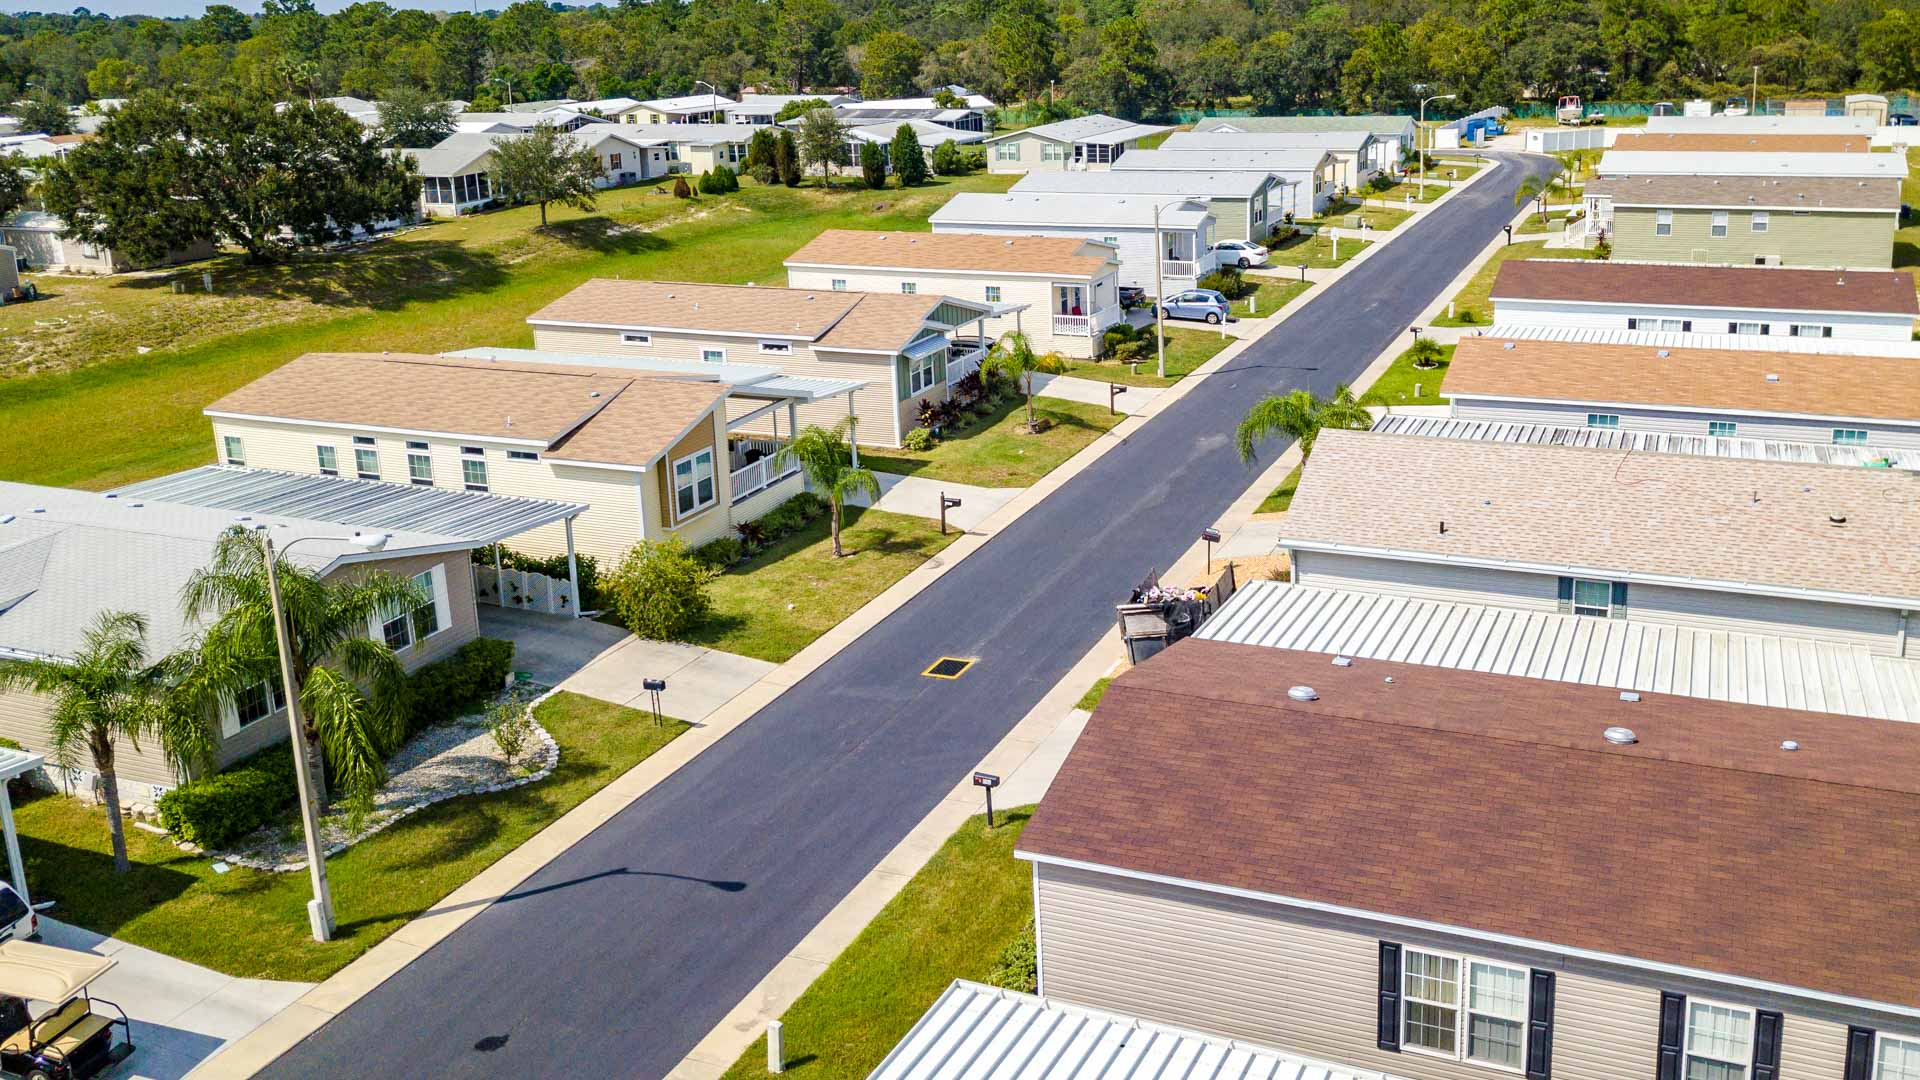 Brentwood Estates 55+ Manufactured Homes Community Aerial View in Hudson, FL